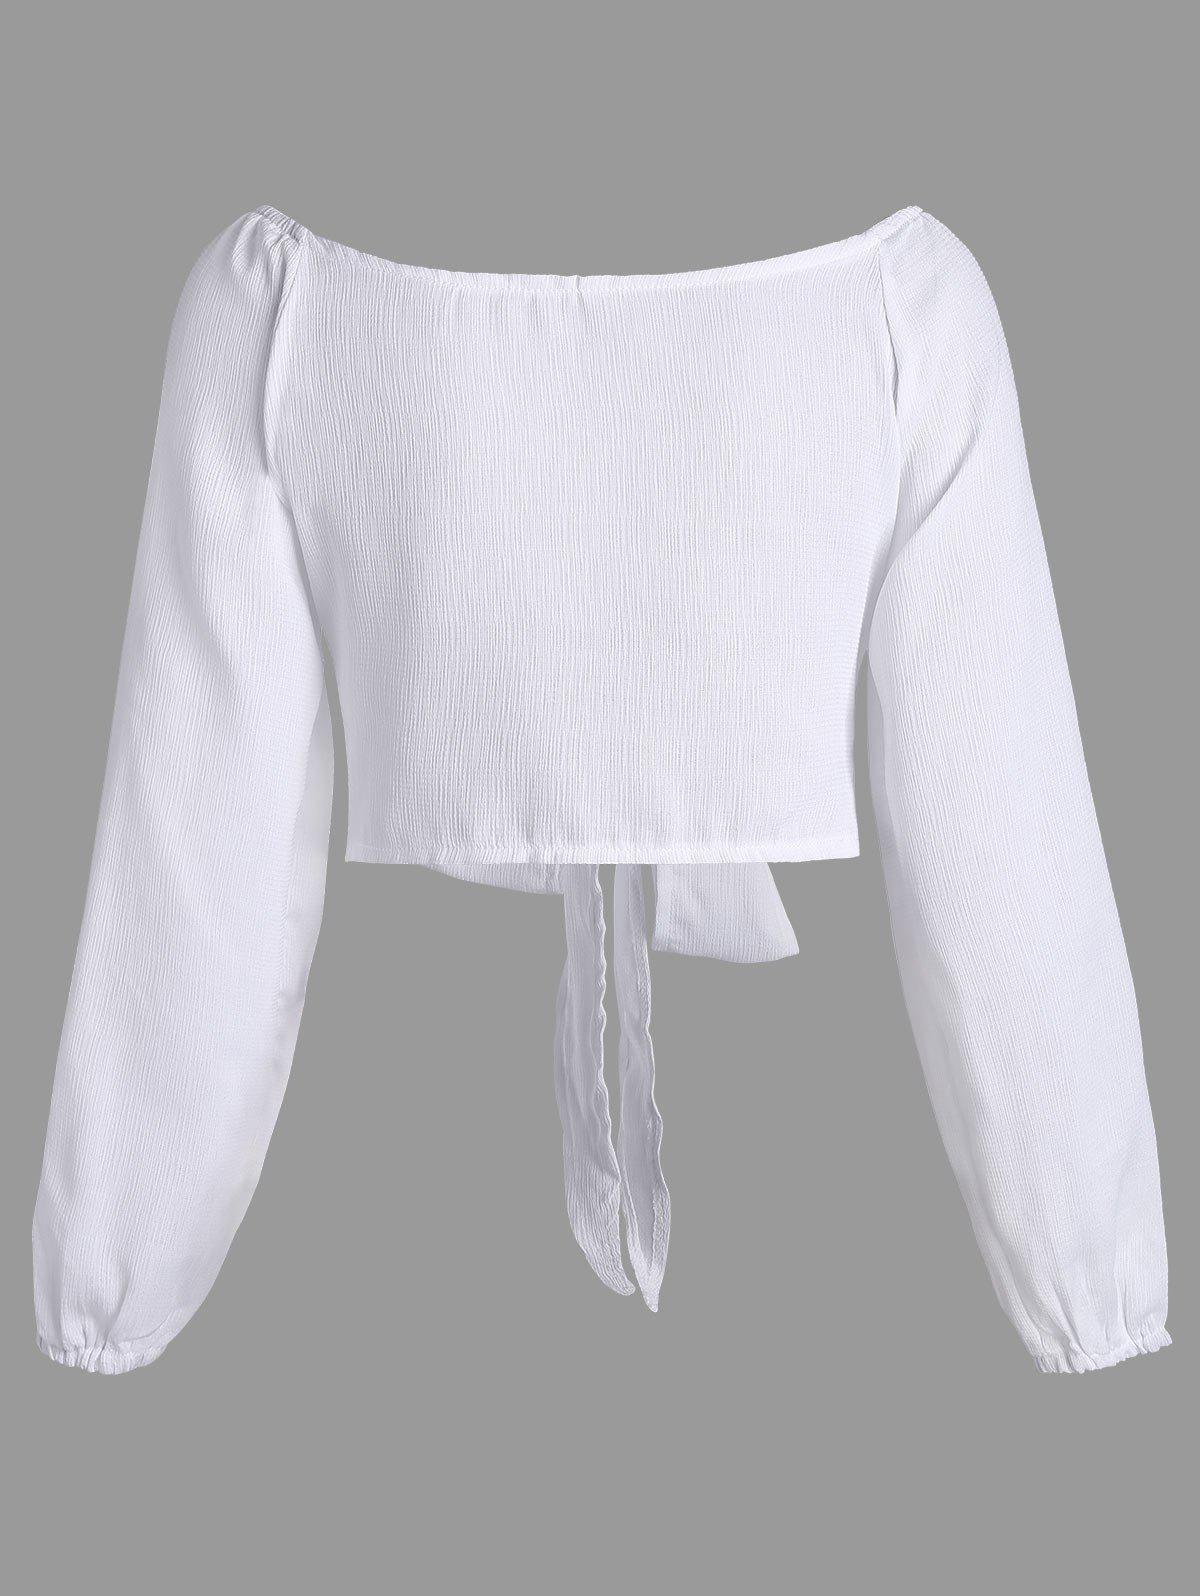 Long Sleeve Self Tie Crop Top - WHITE L